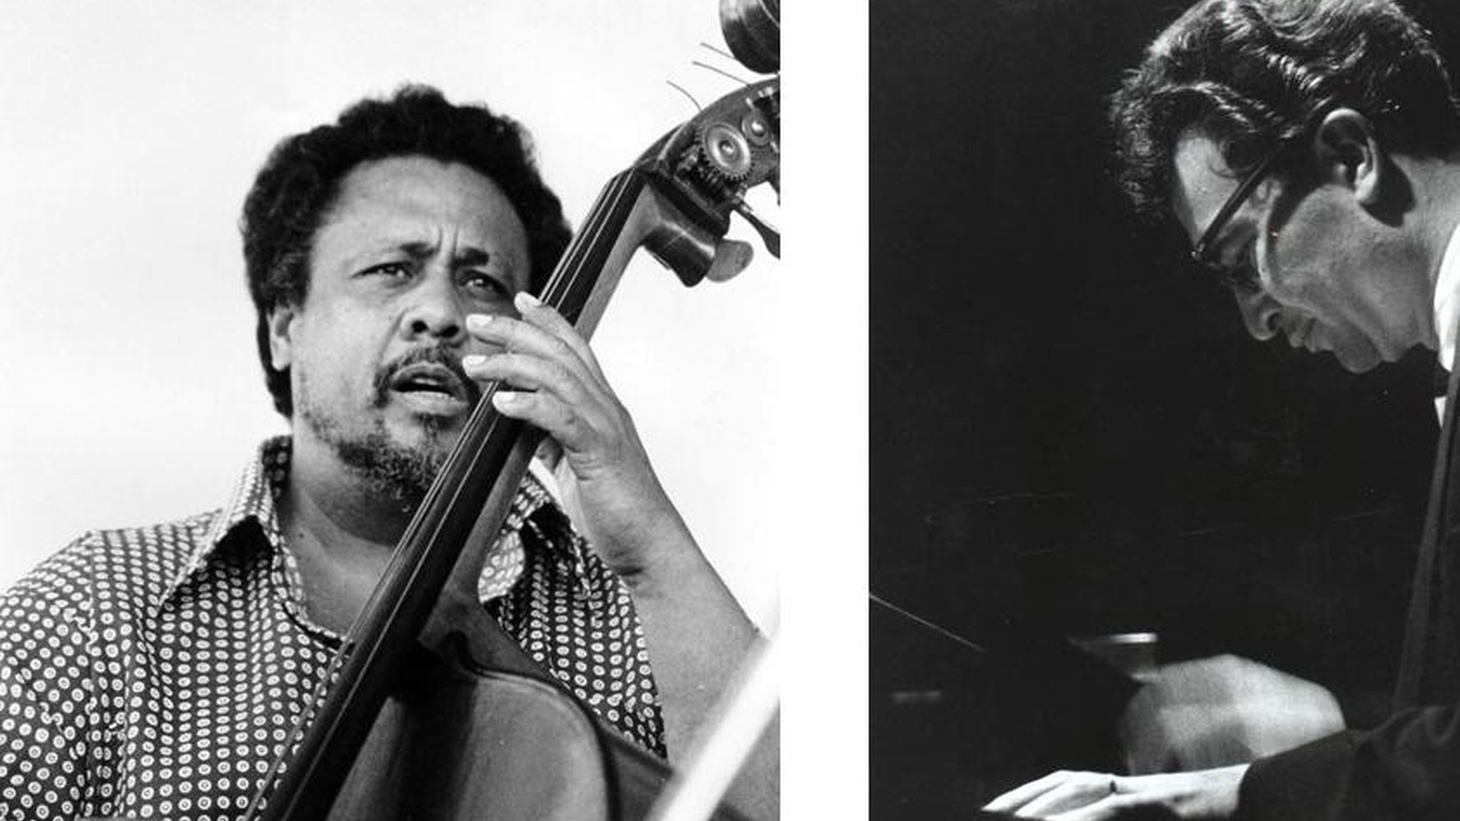 In 1959, Jazz got a kick start from innovators like Miles Davis, Charles Mingus and Dave Brubeck, who helped change the musical landscape forever. Highlights from classic records; family members/jazz historians are featured. (Airs noon-1pm and preempts To the Point.)